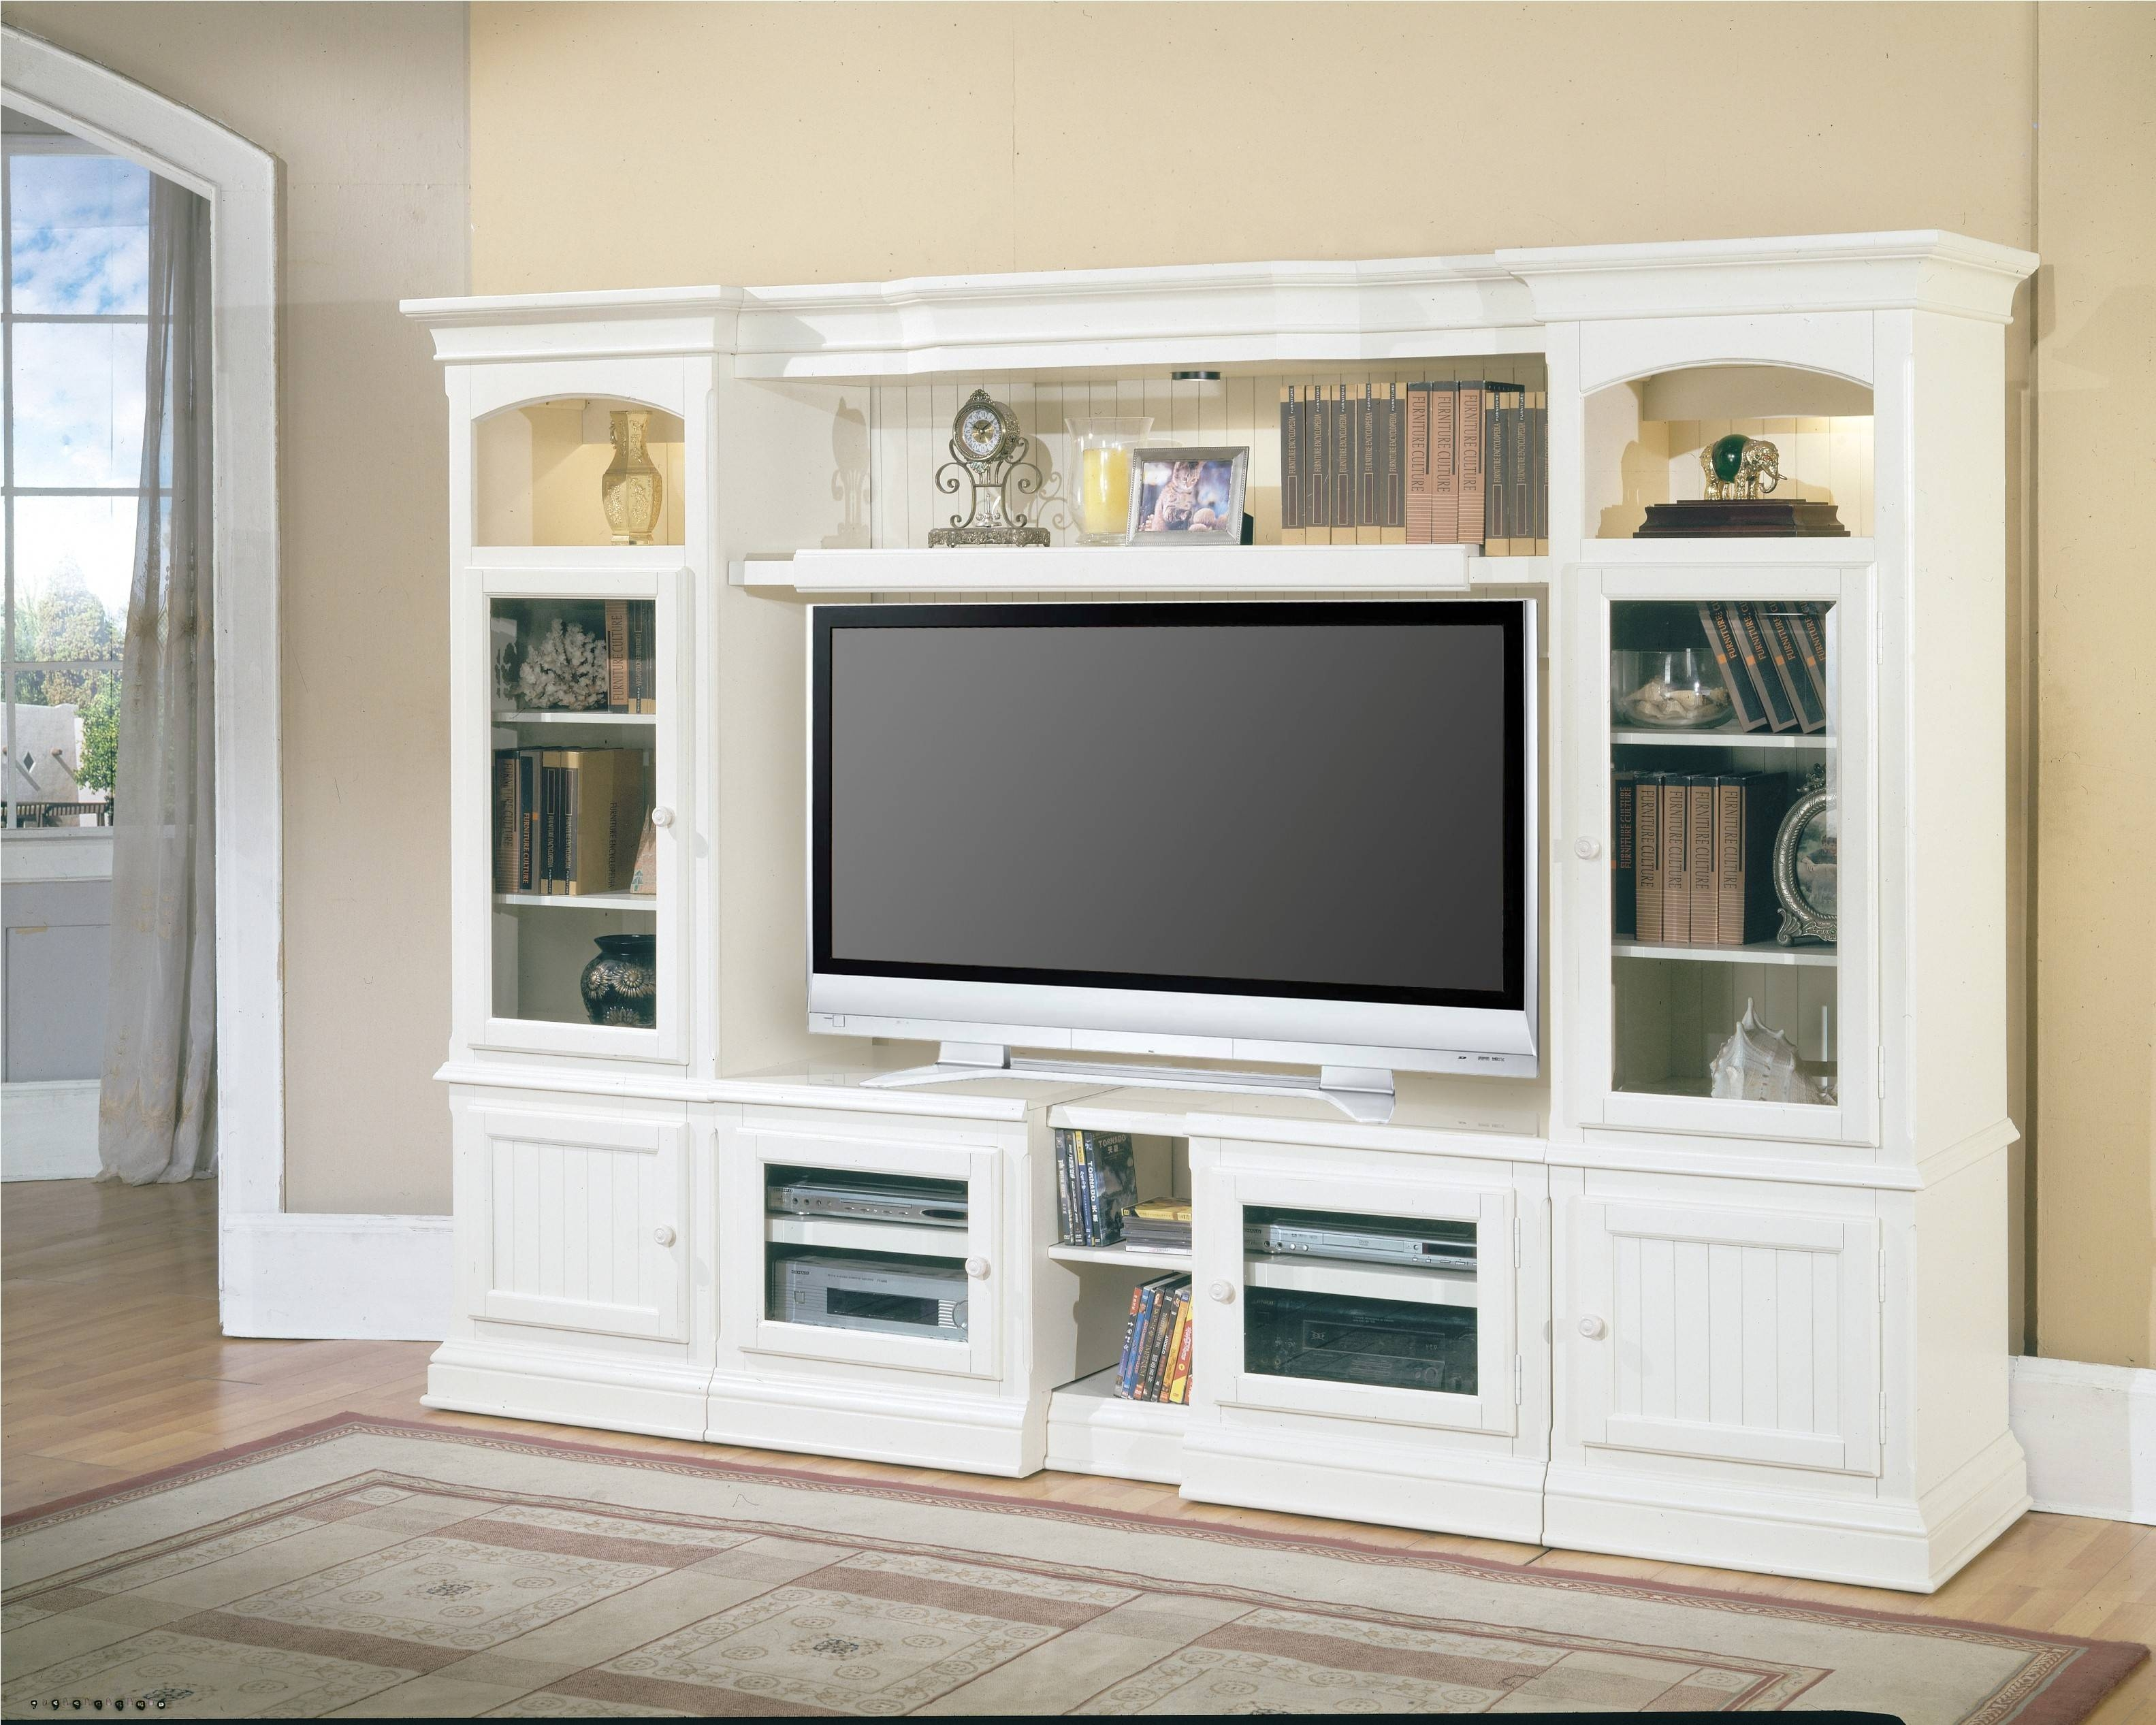 Best 15 of tv cabinets and wall units Small wall cabinets for bedroom